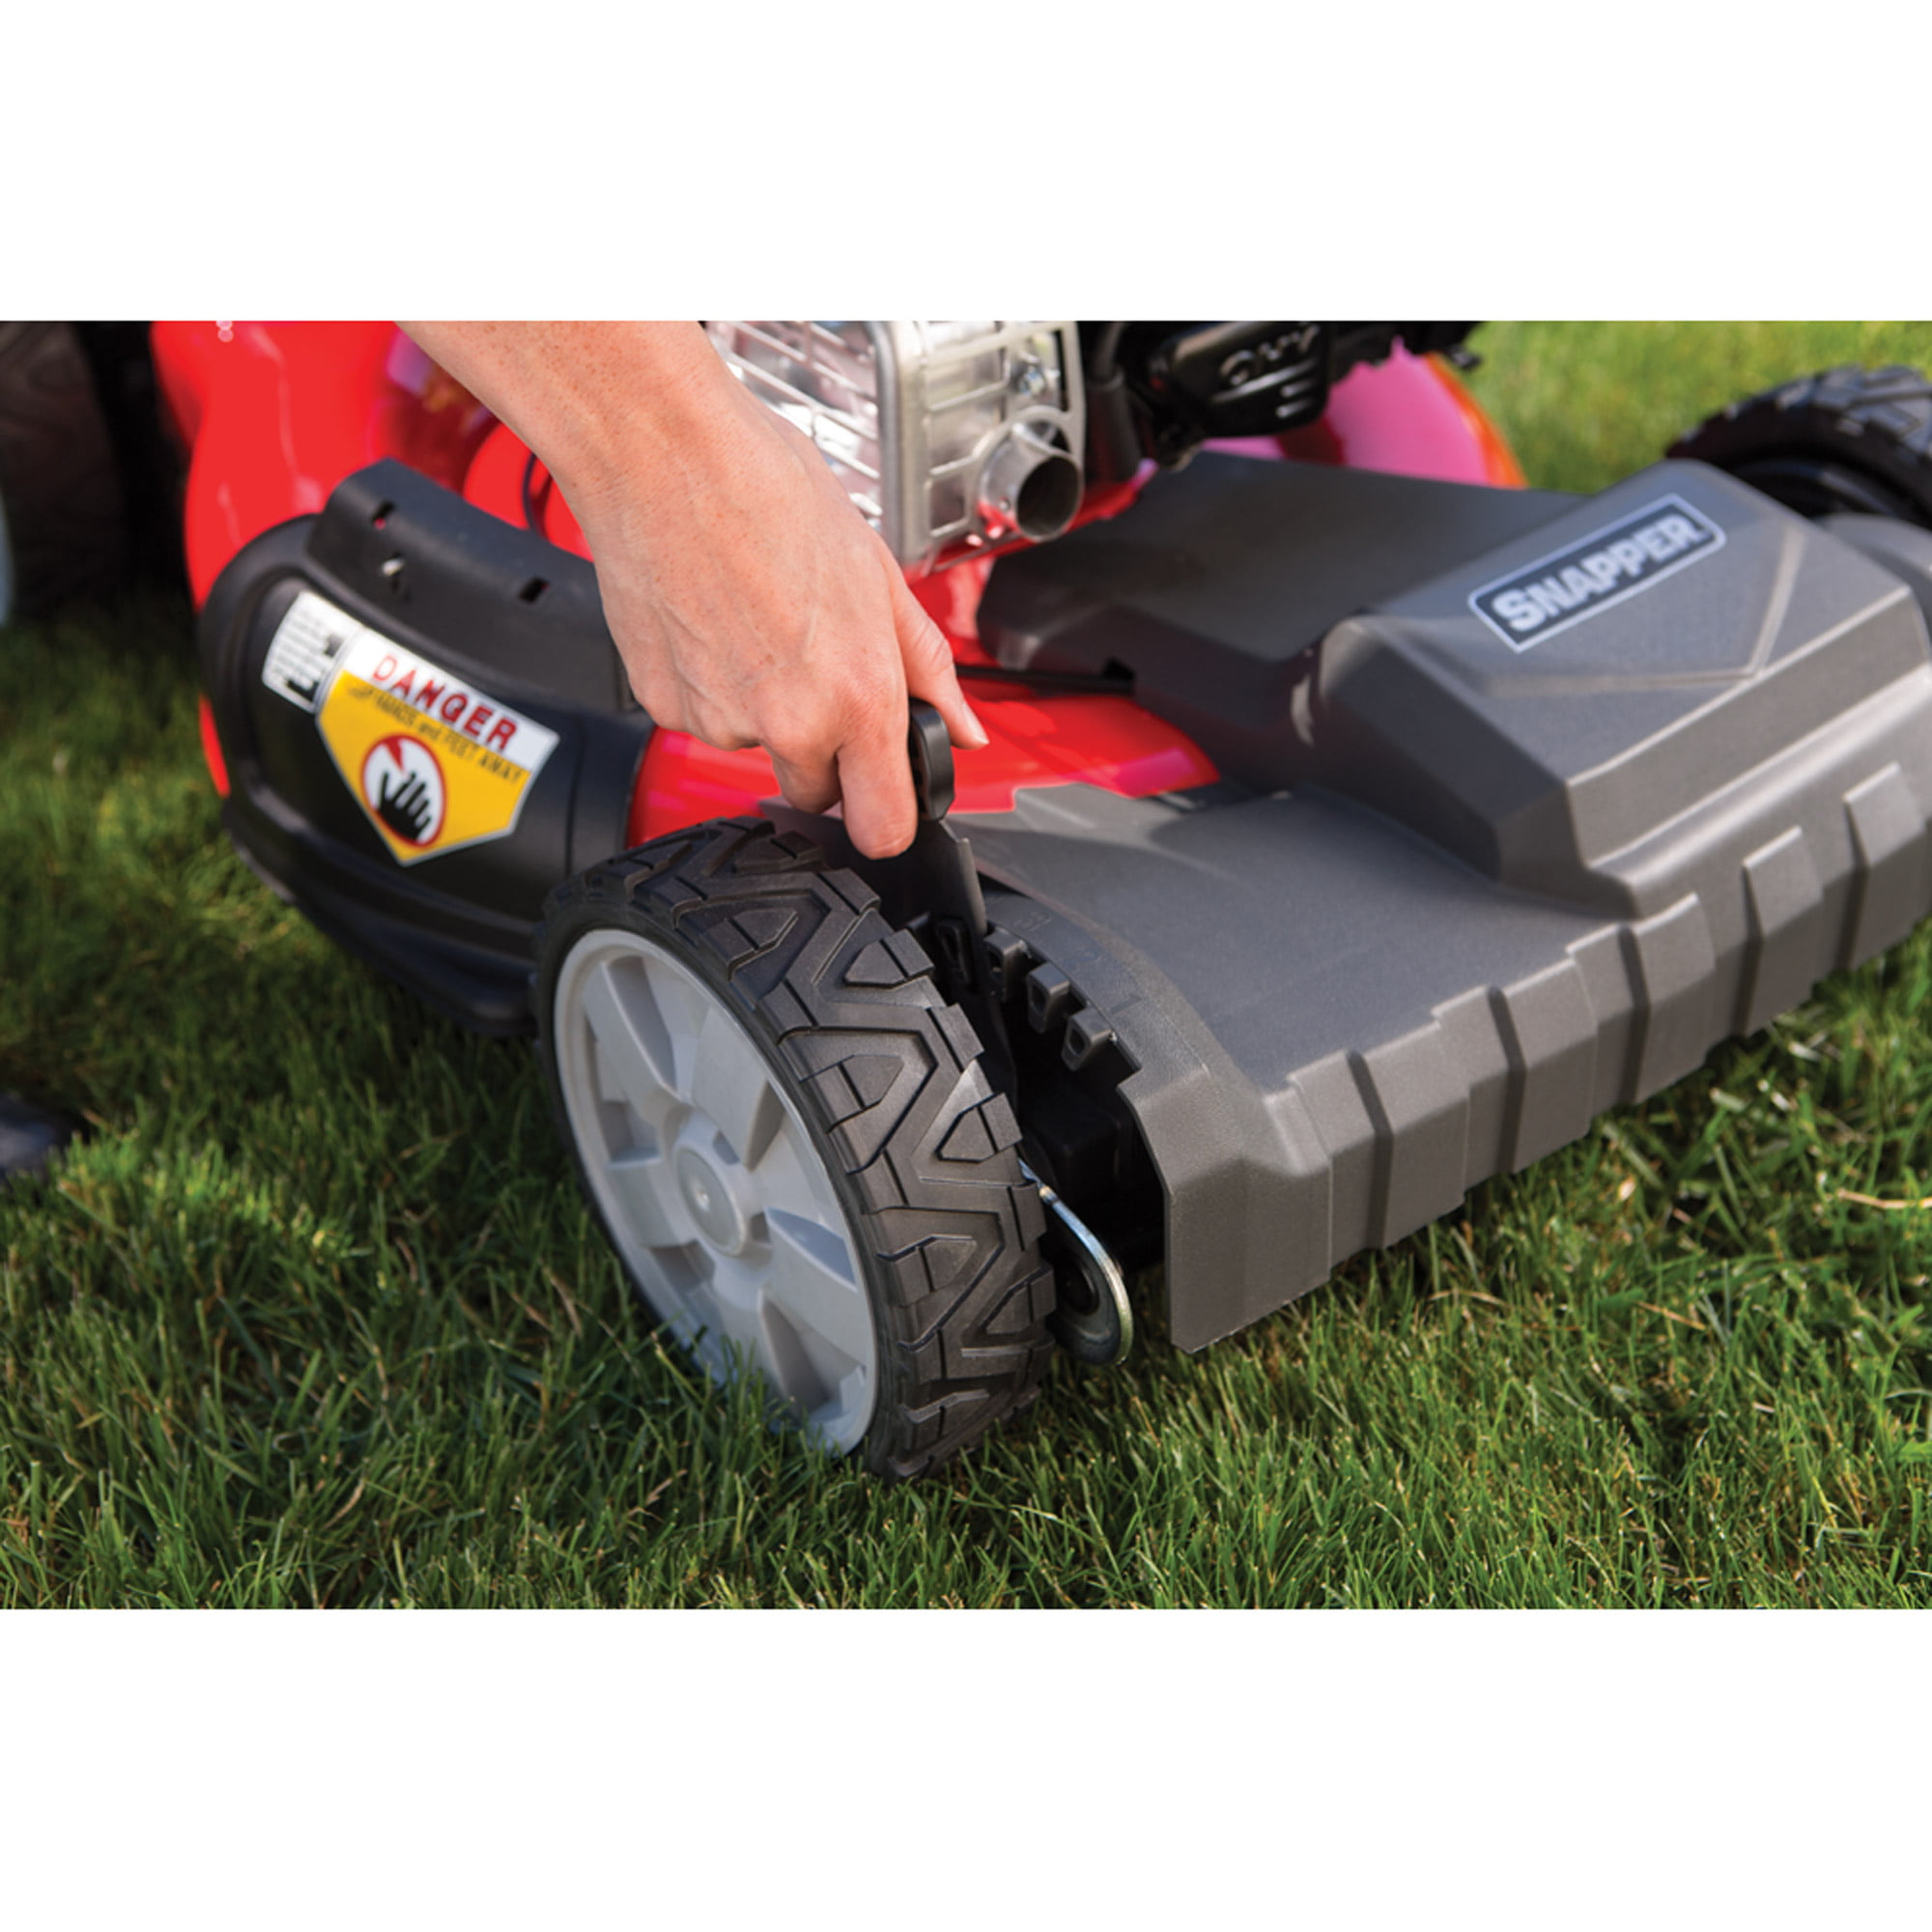 snapper 21 self propelled gas mower with side discharge mulching